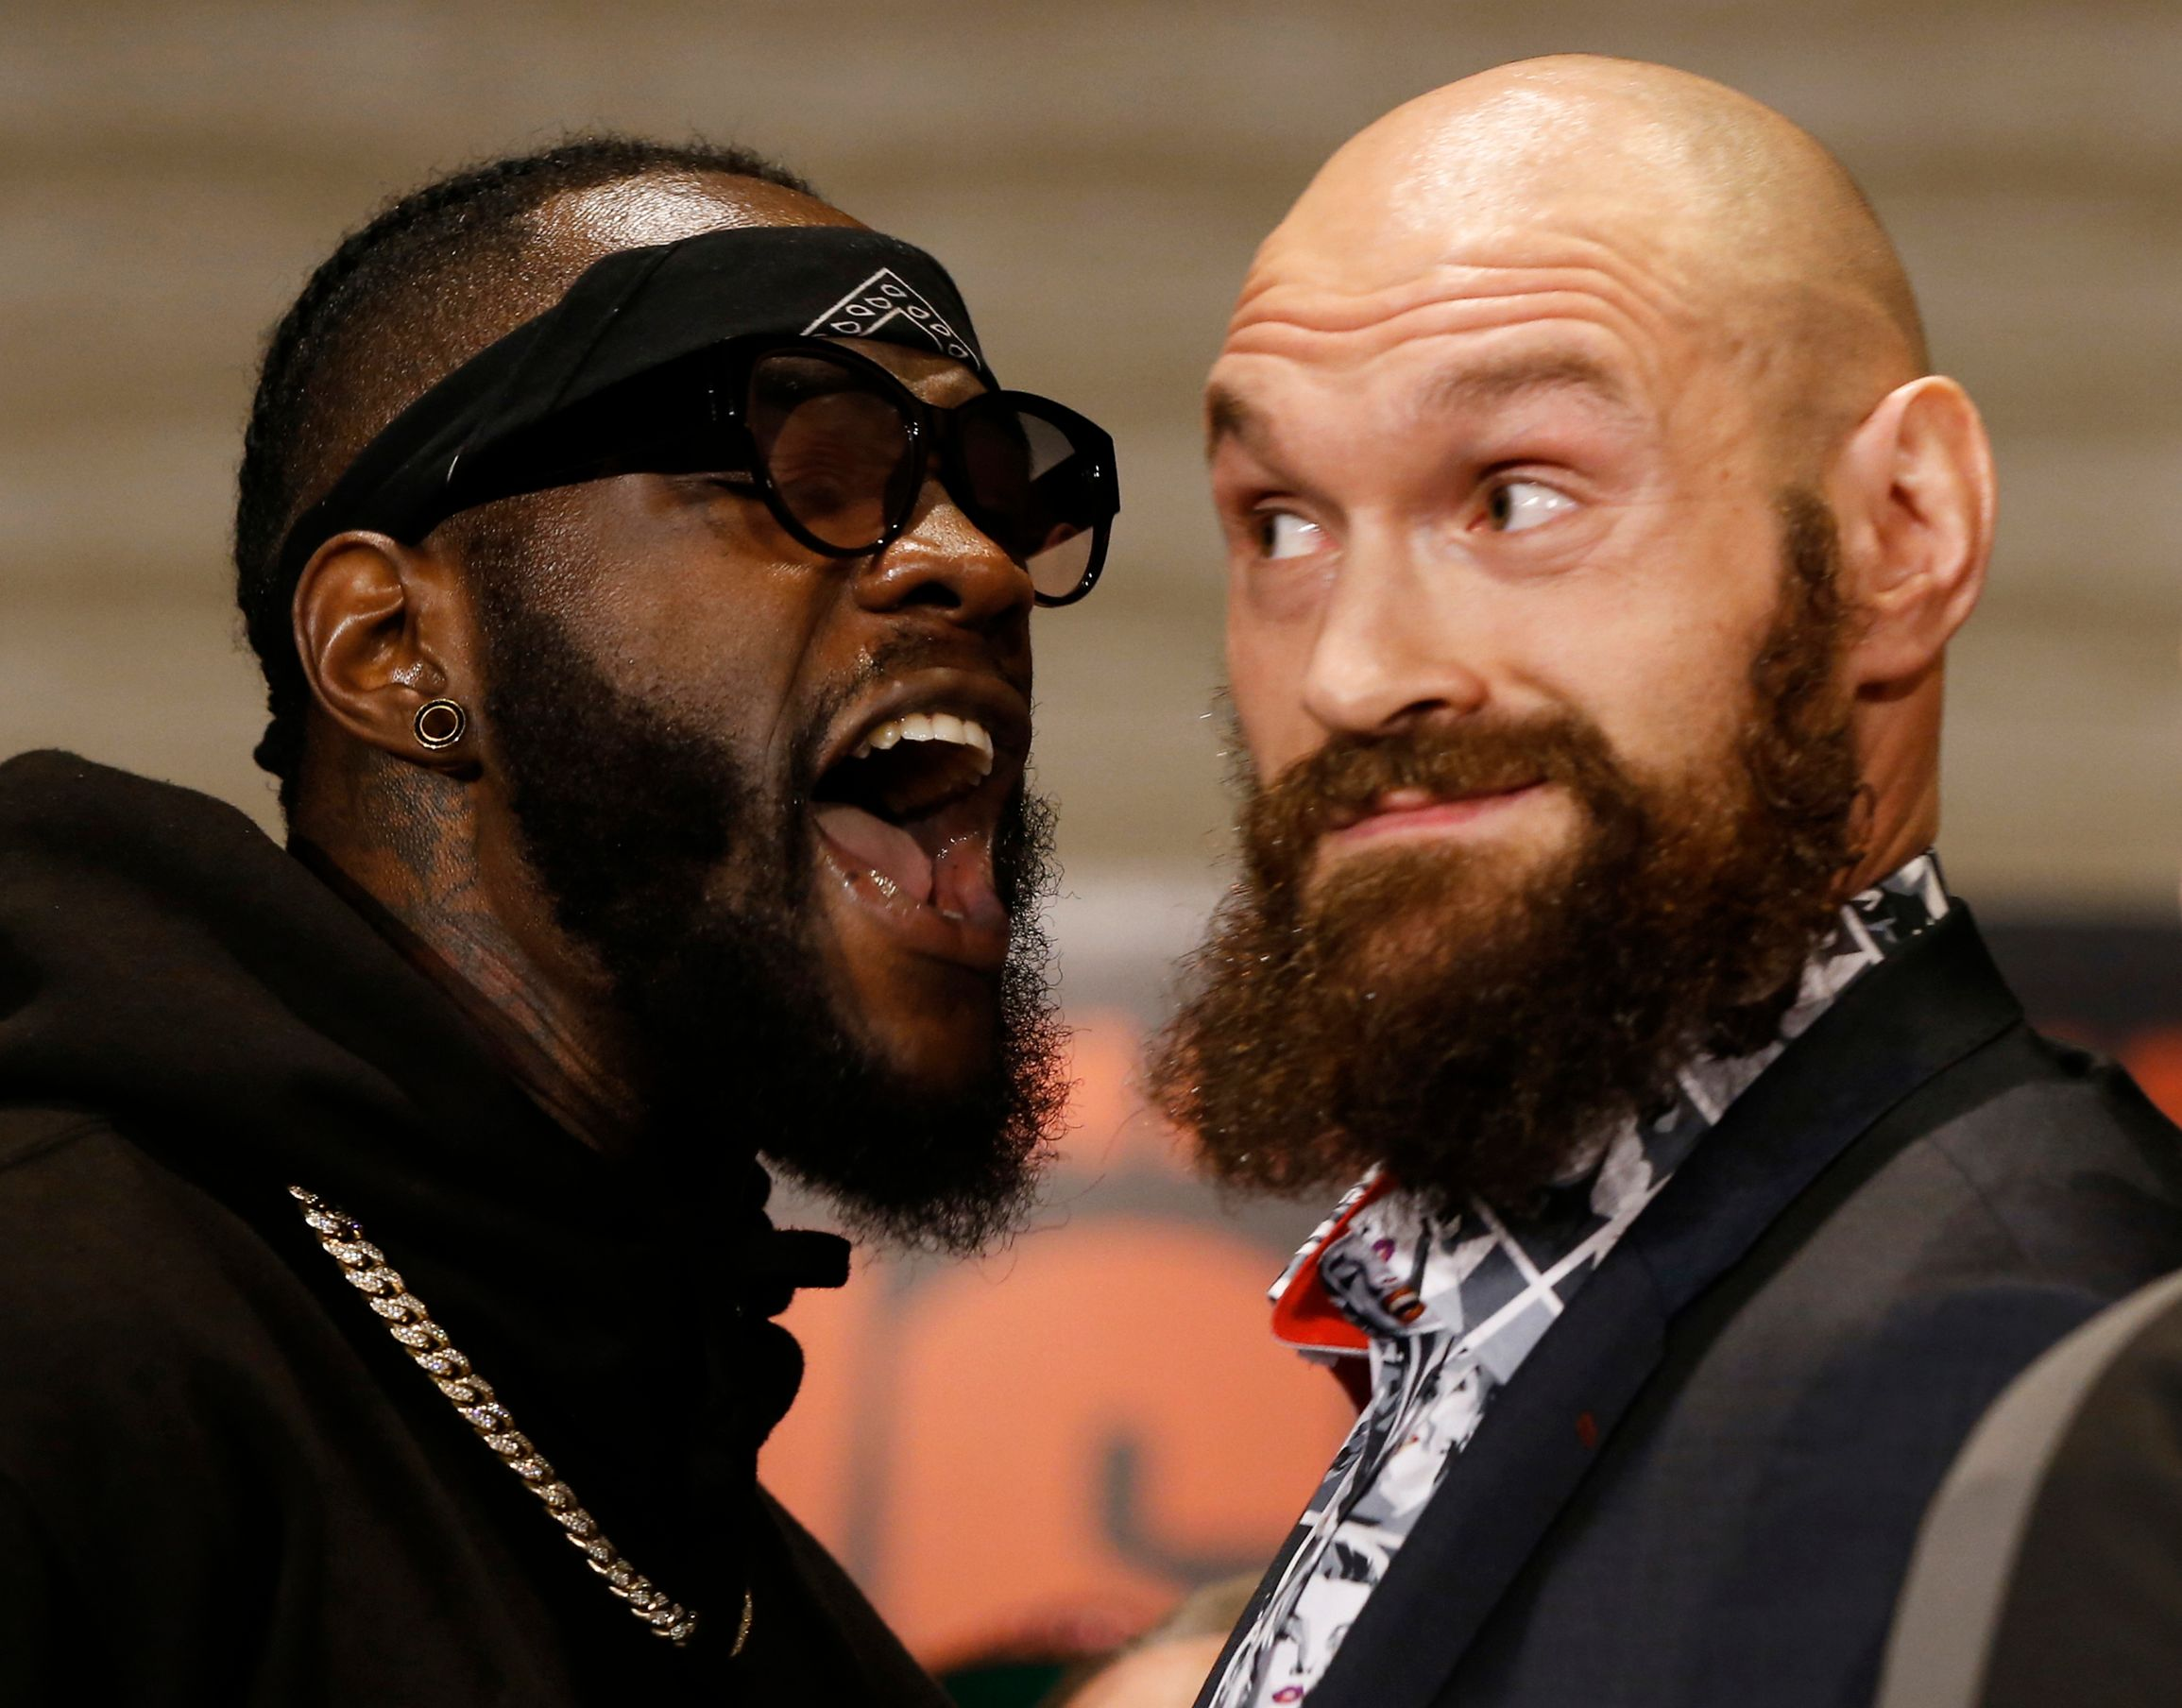 Deontay Wilder vs. Tyson Fury: Round-by-round analysis of WBC heavyweight title bout